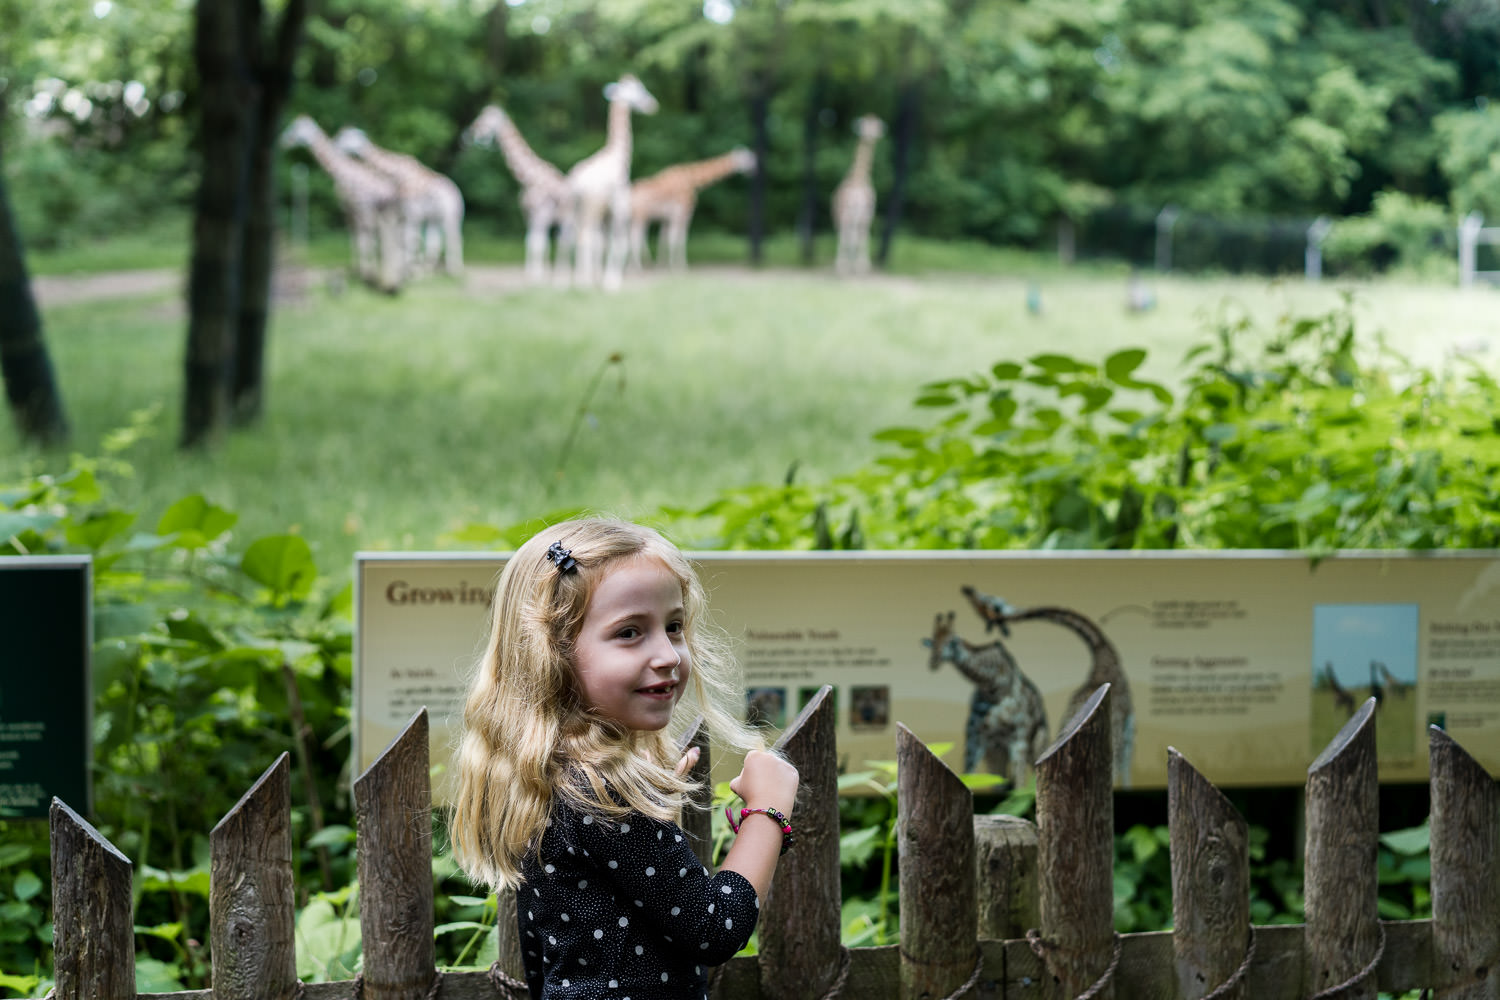 A little girl looks at the giraffes at the Bronx Zoo.